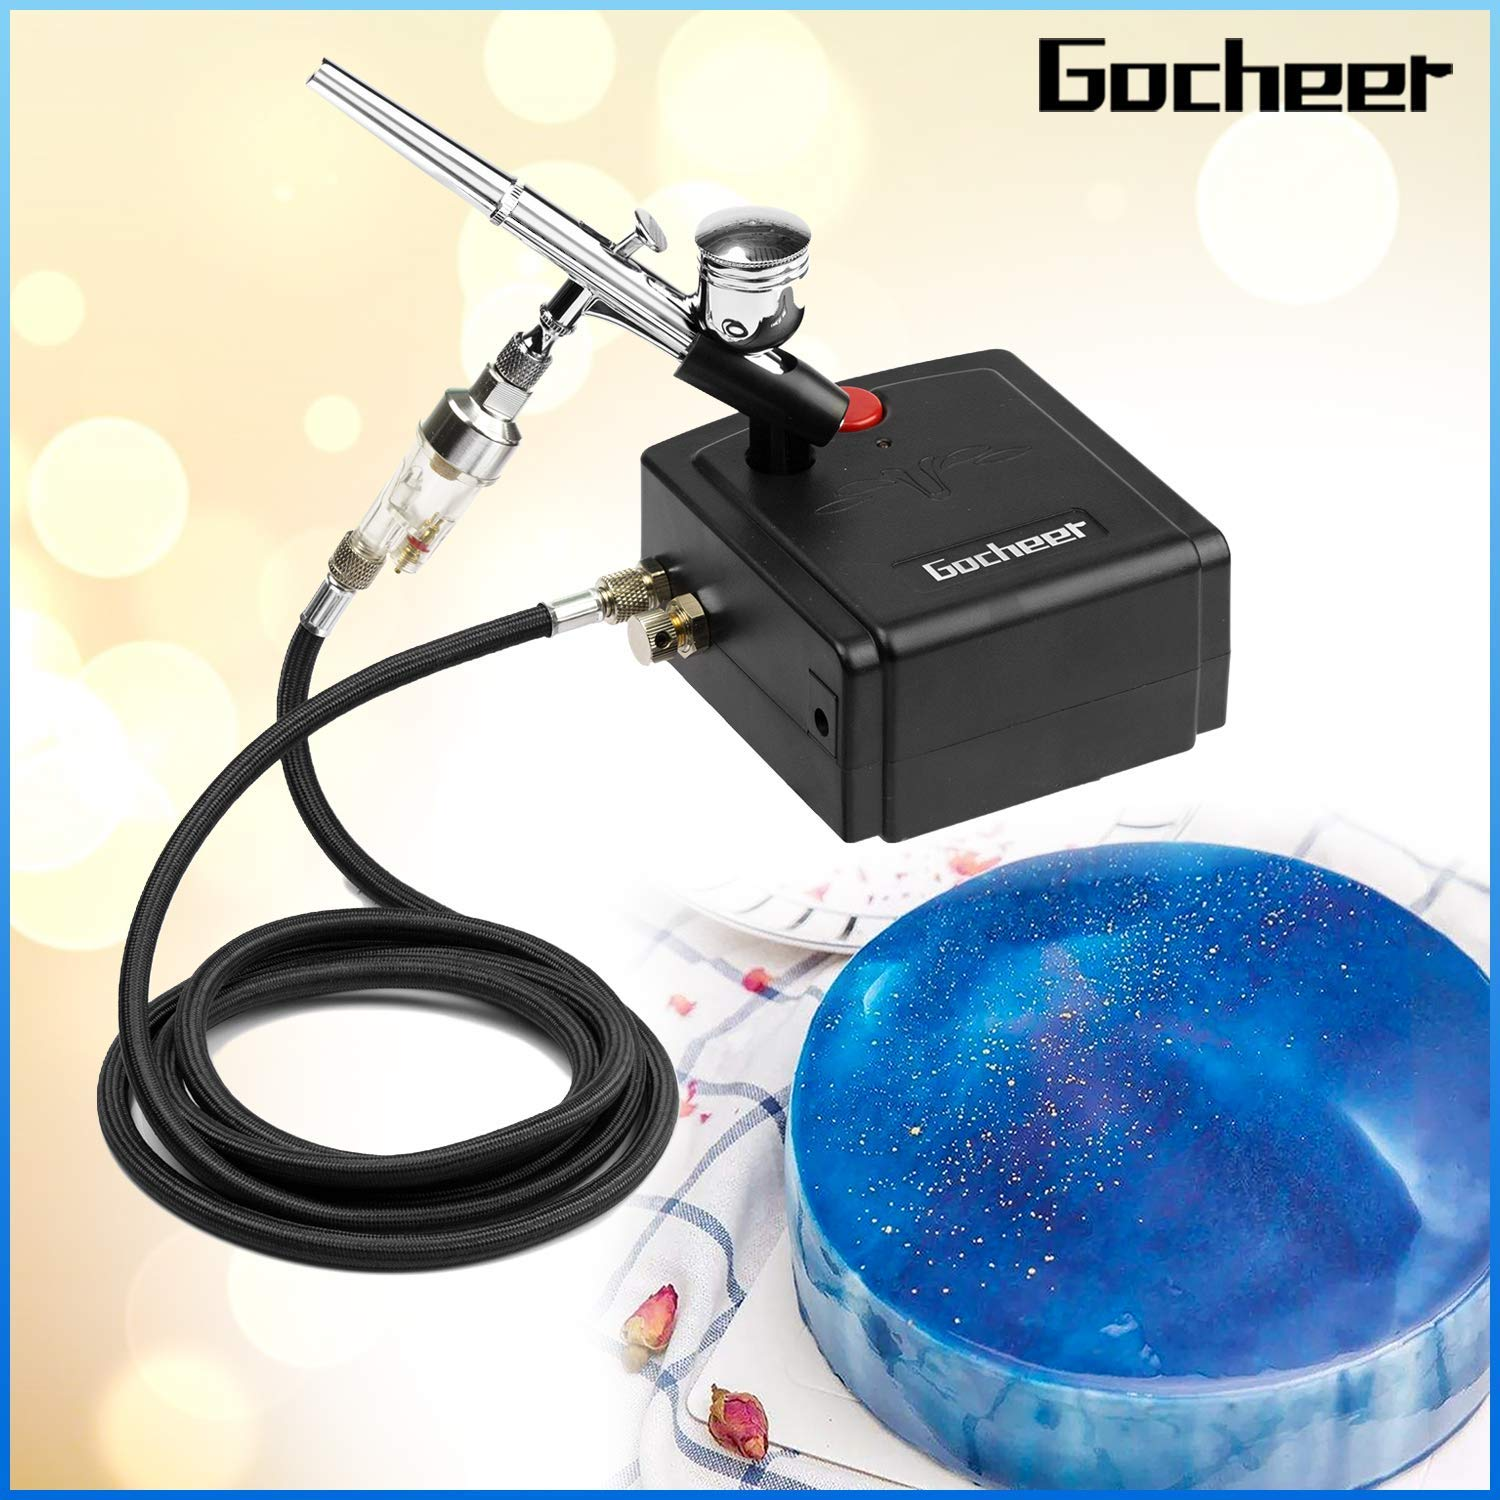 Gocheer Mini Airbrush Kit, Dual-Action USB Rechargeable Air Brush Pen Gravity Feed Airbrush for Makeup Art Craft Nails Cake Decorating Modeling Tool with Airbrush Cleaning Set